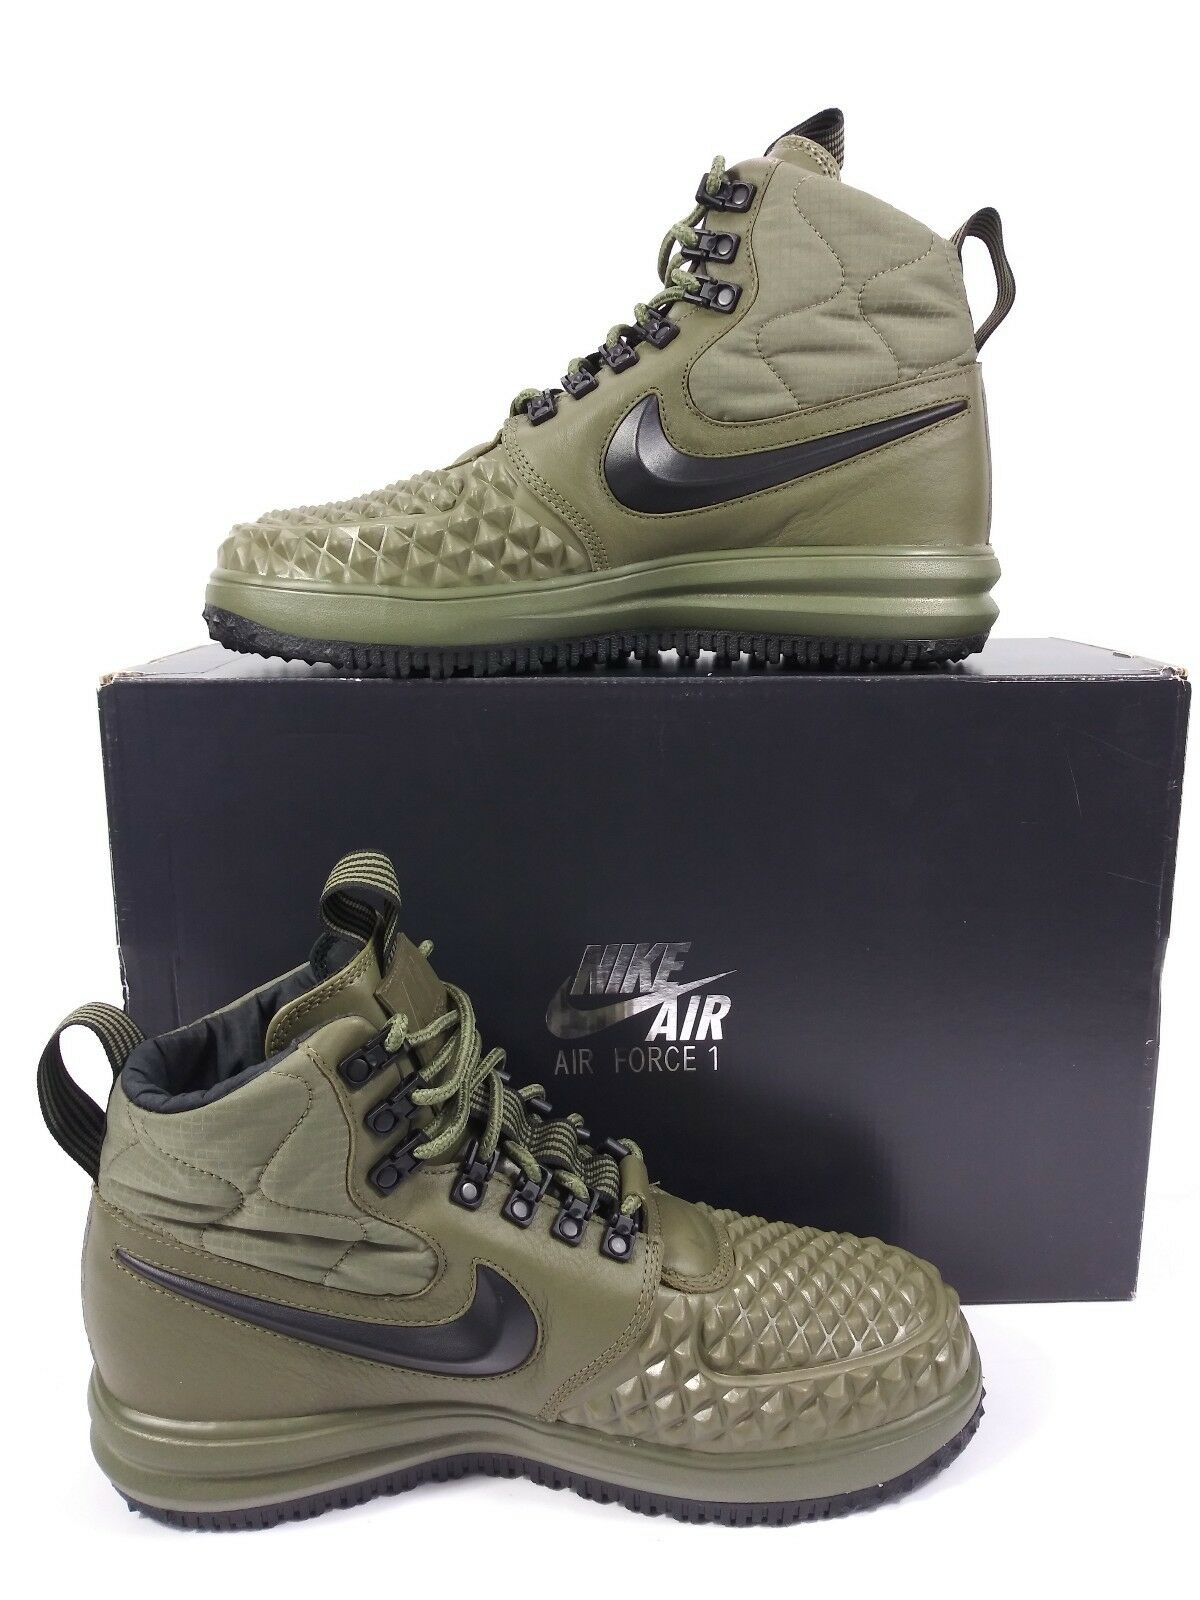 NEW Nike Lunar Air Force 1 Duckboot 17 Medium Olive Green LF1 916682-202 SZ 8.5